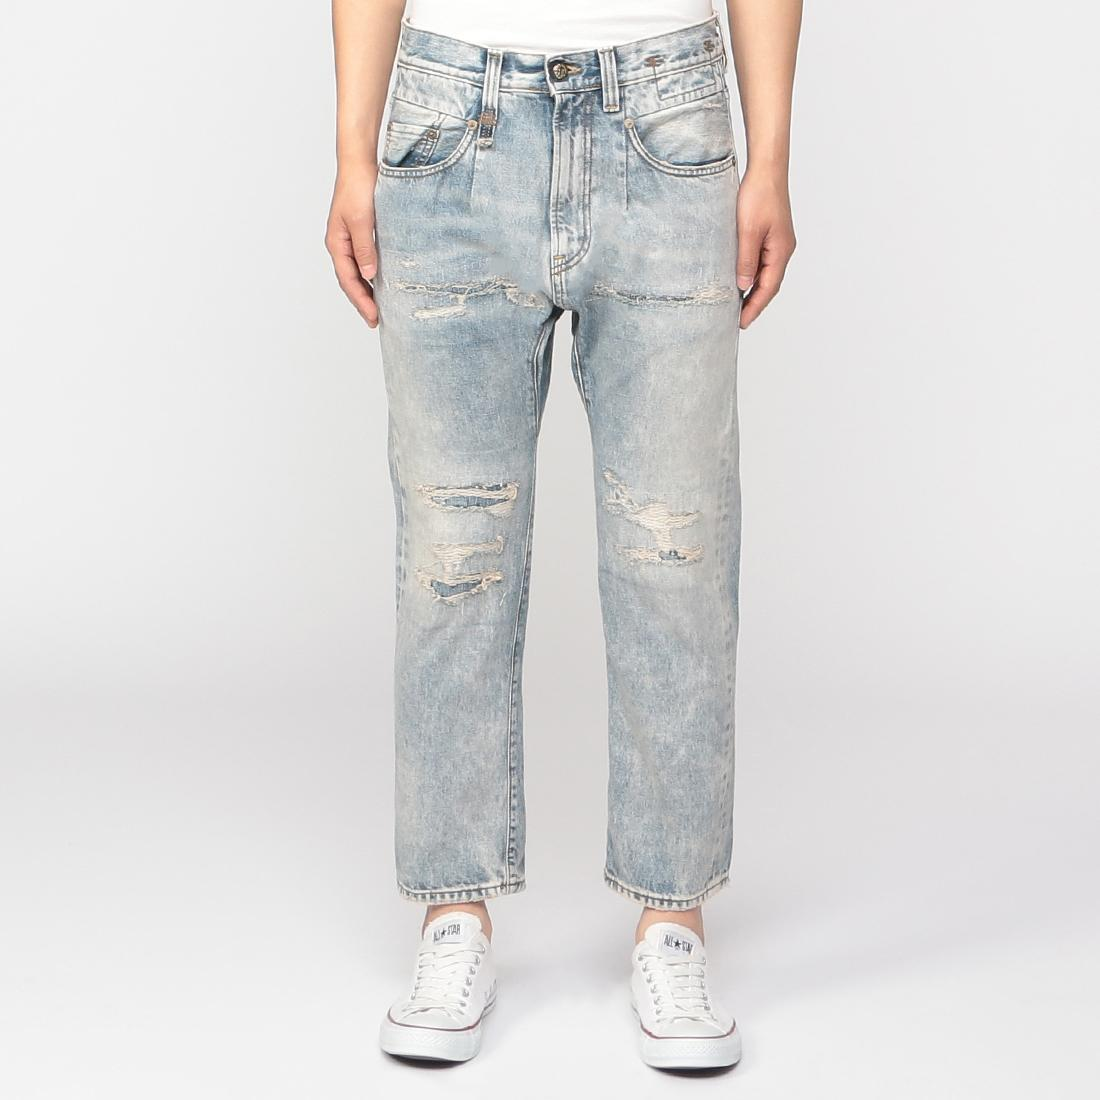 201605_mens-denim-5_010